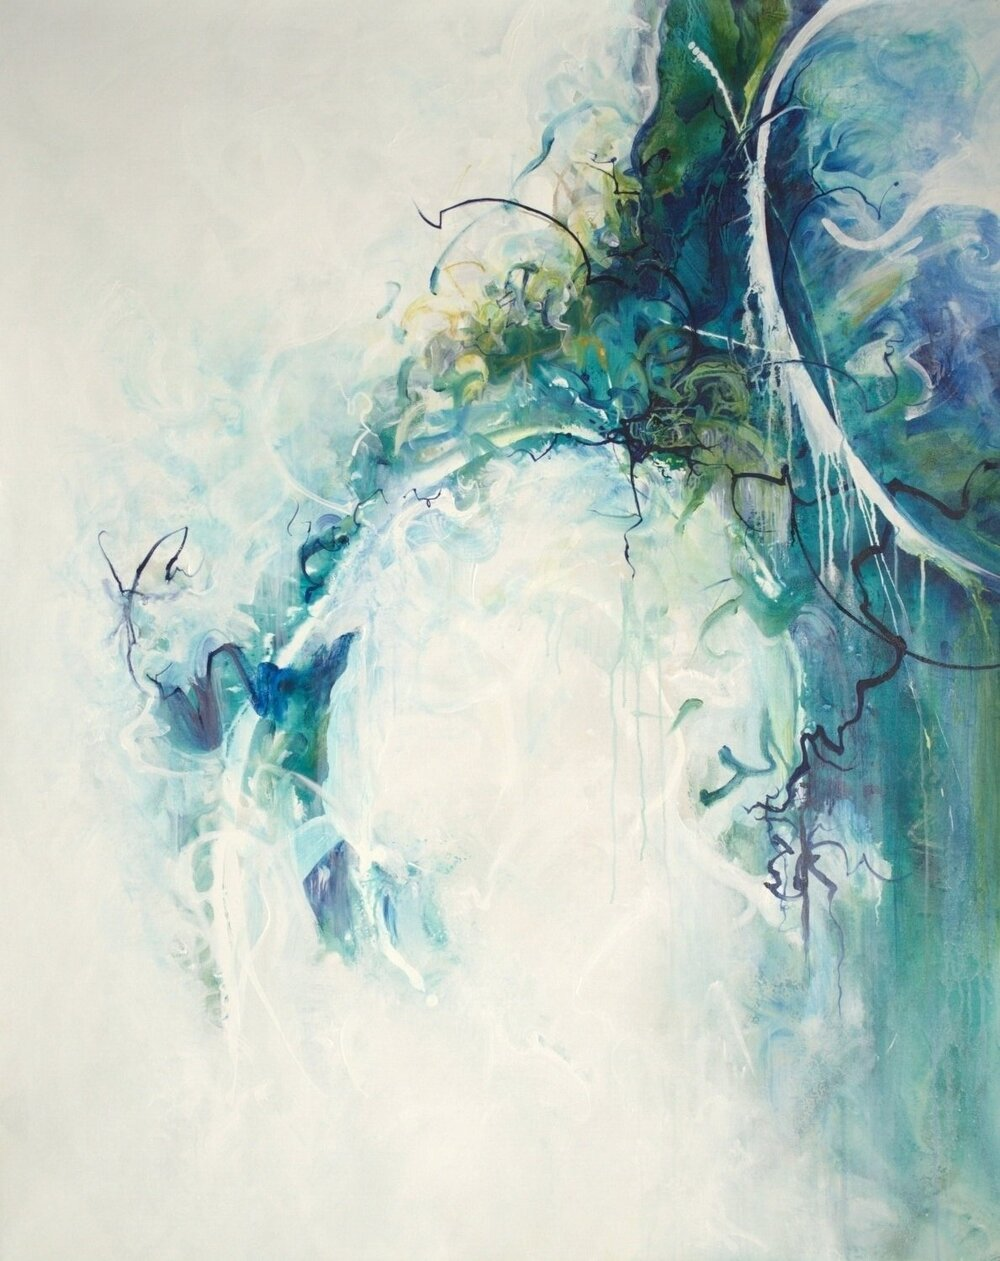 Enchanted Forest in Blues - 56 x 44